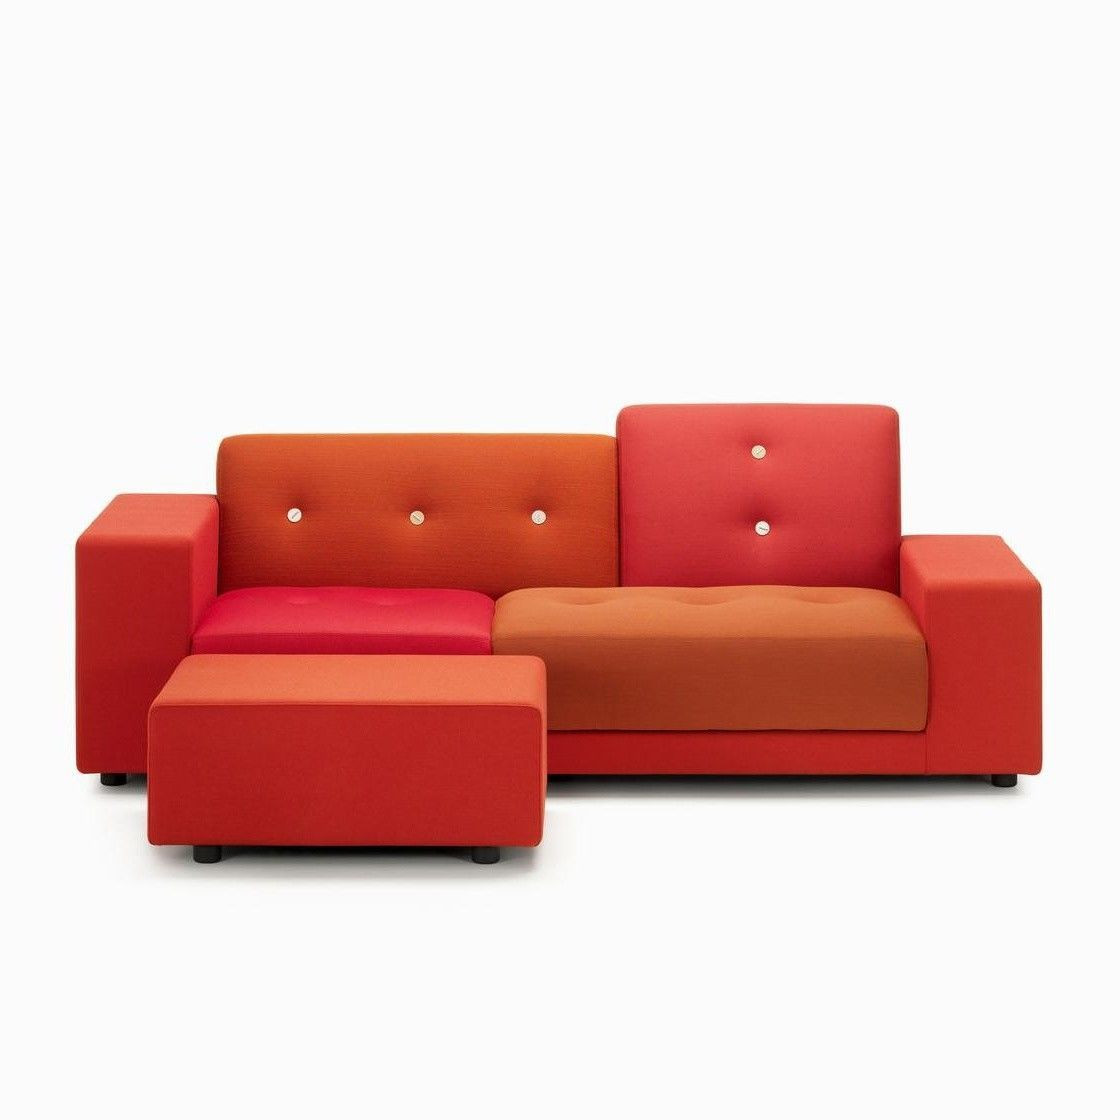 polder compact sofa vitra. Black Bedroom Furniture Sets. Home Design Ideas